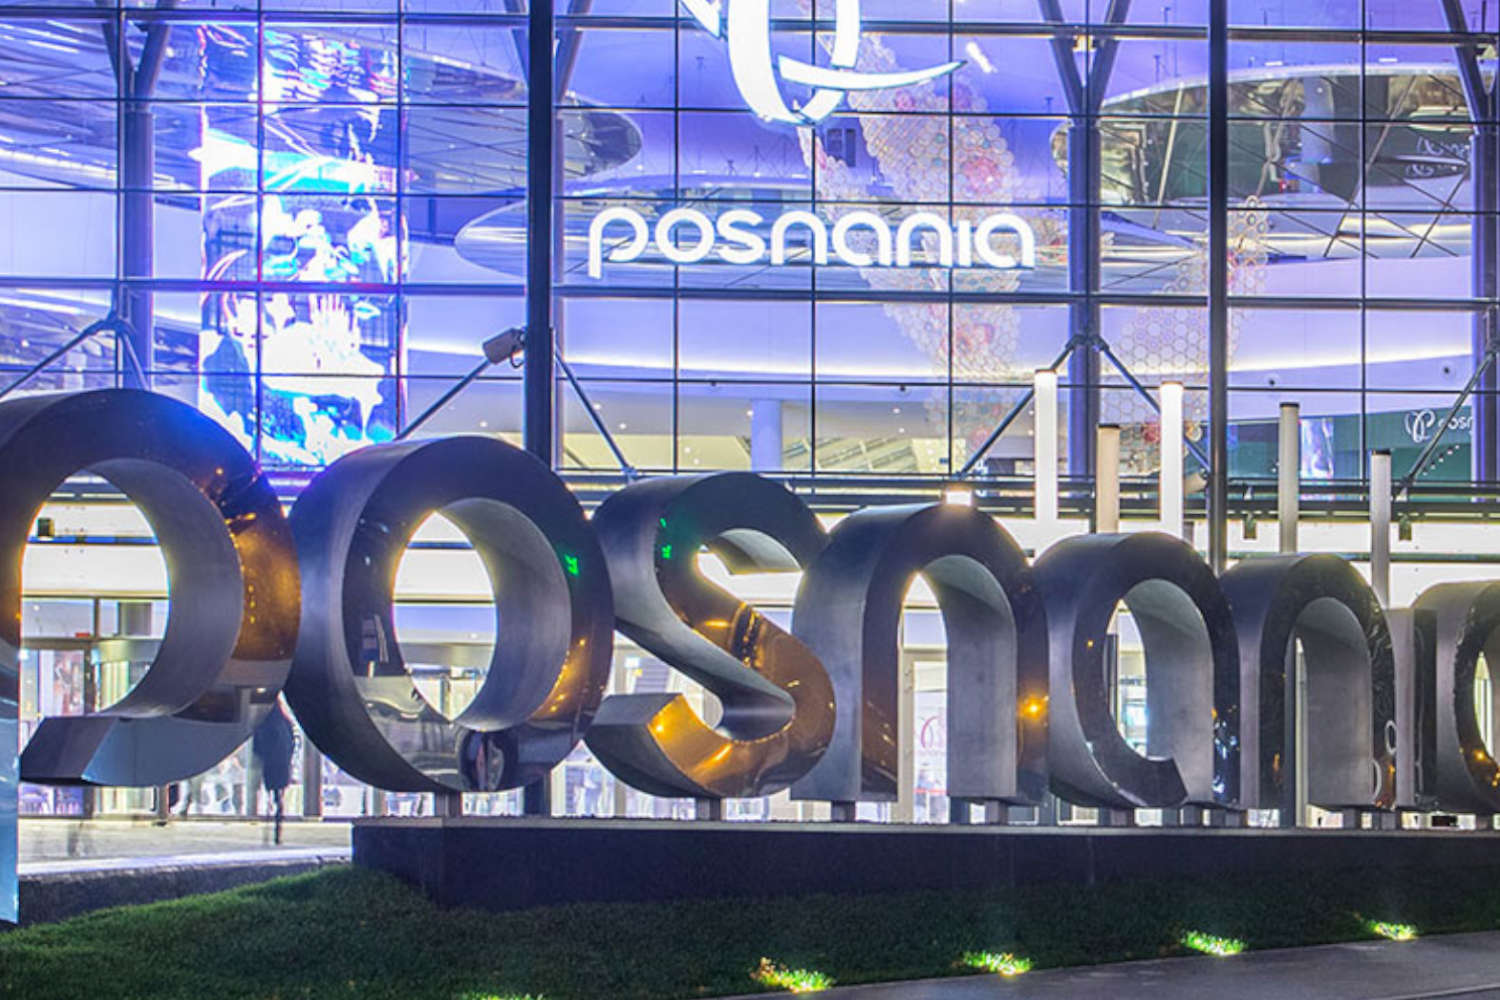 Posnania Shopping Center